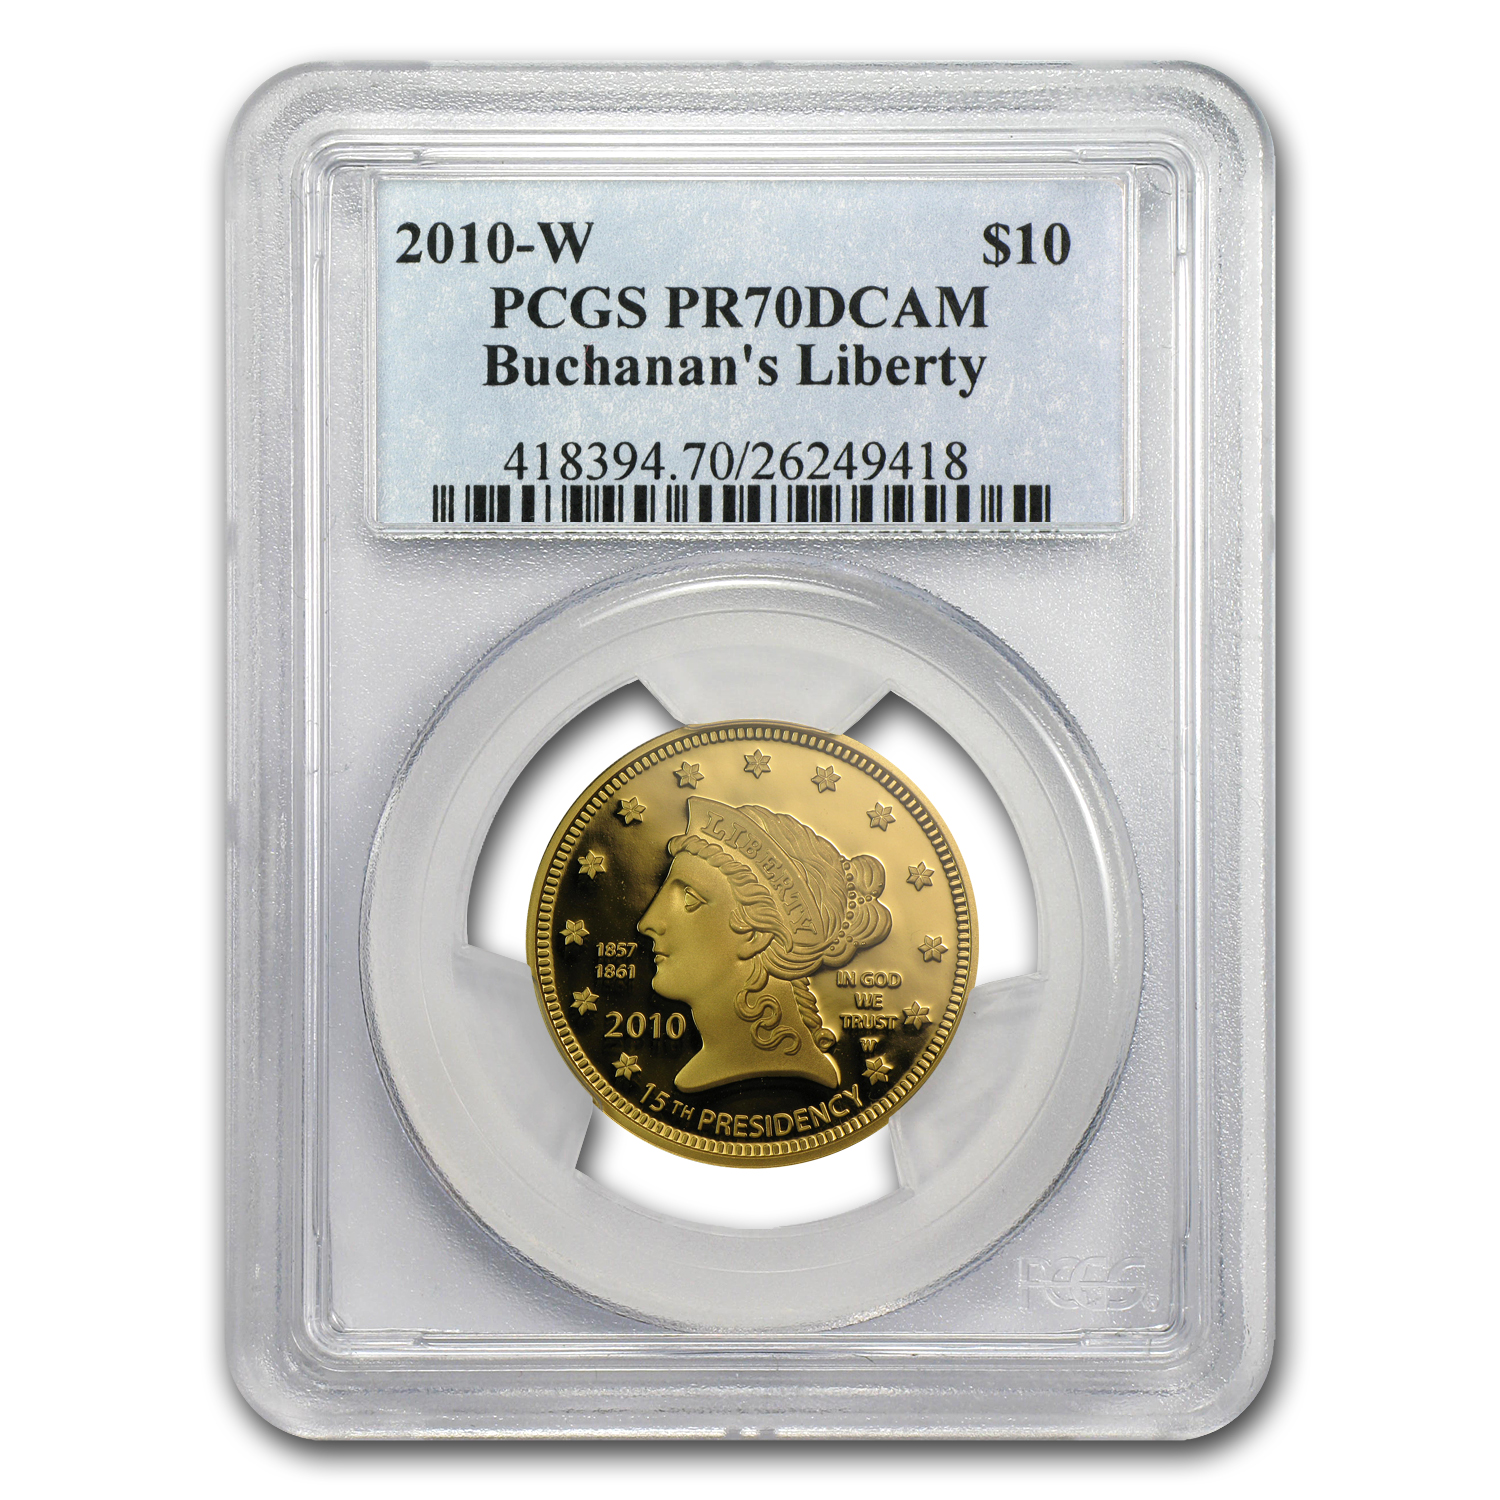 2010-W 1/2 oz Proof Gold Buchanan's Liberty PR-70 PCGS